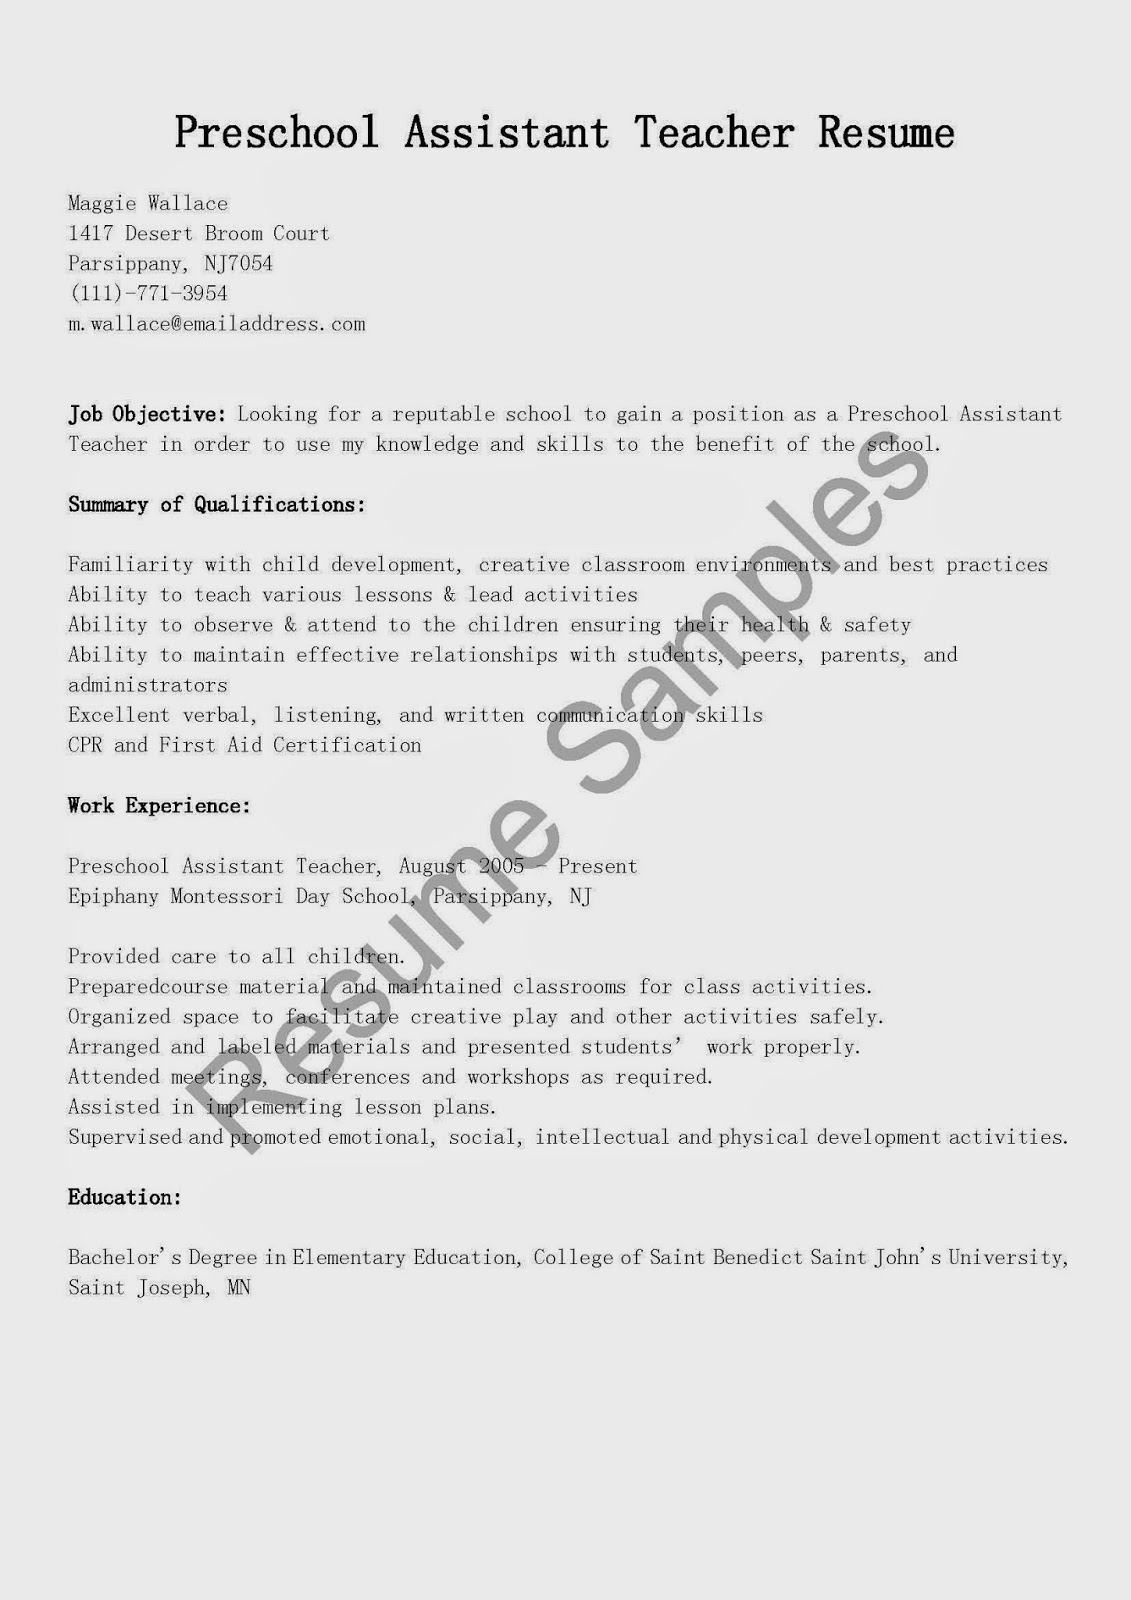 Are References Required On A Resume Resume Samples Preschool Head Teacher Resume Sample